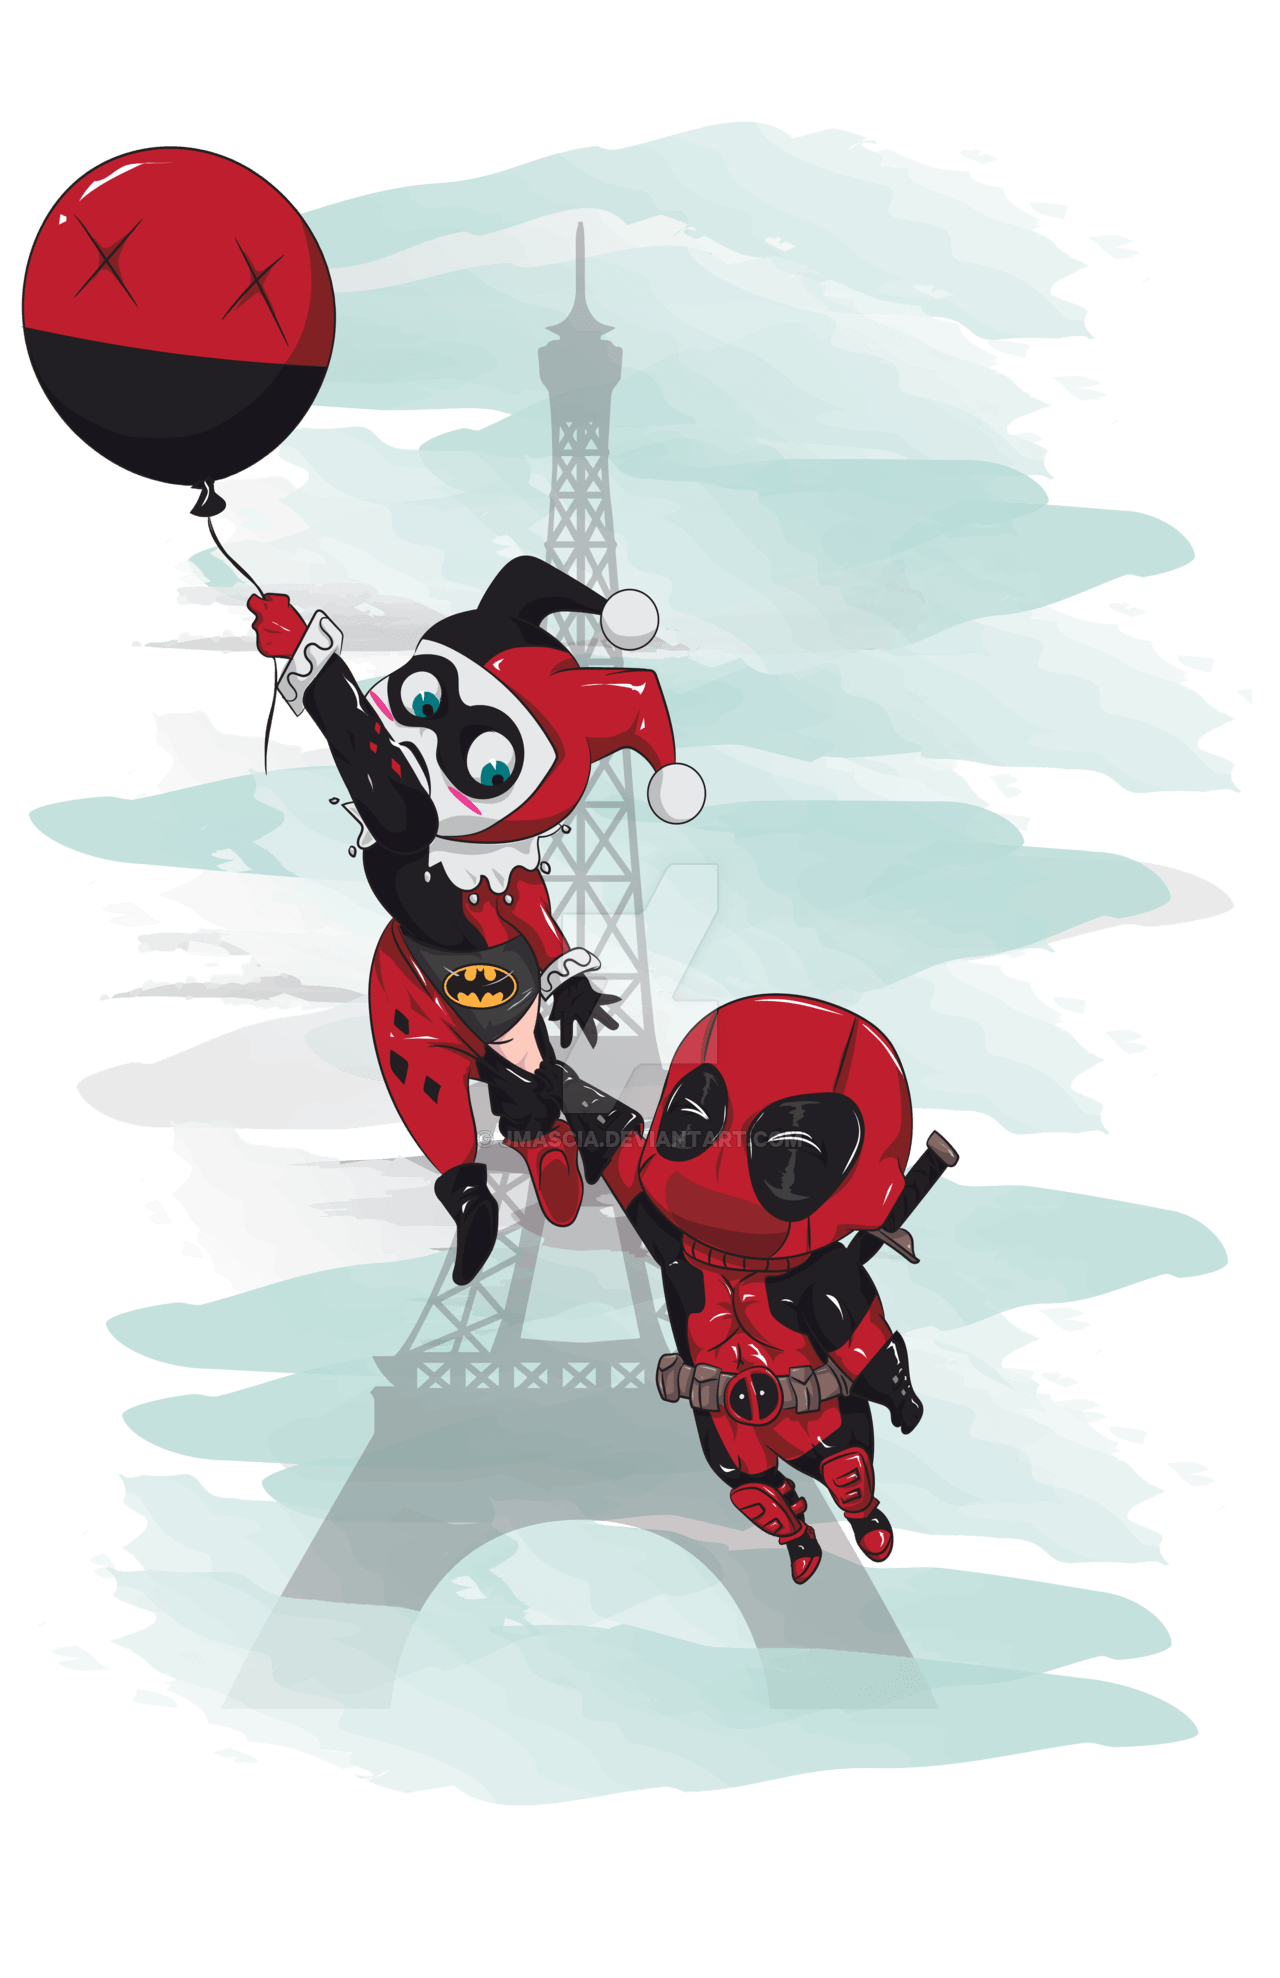 Deadpool And Harley Quinn Wallpapers Top Free Deadpool And Harley Quinn Backgrounds Wallpaperaccess